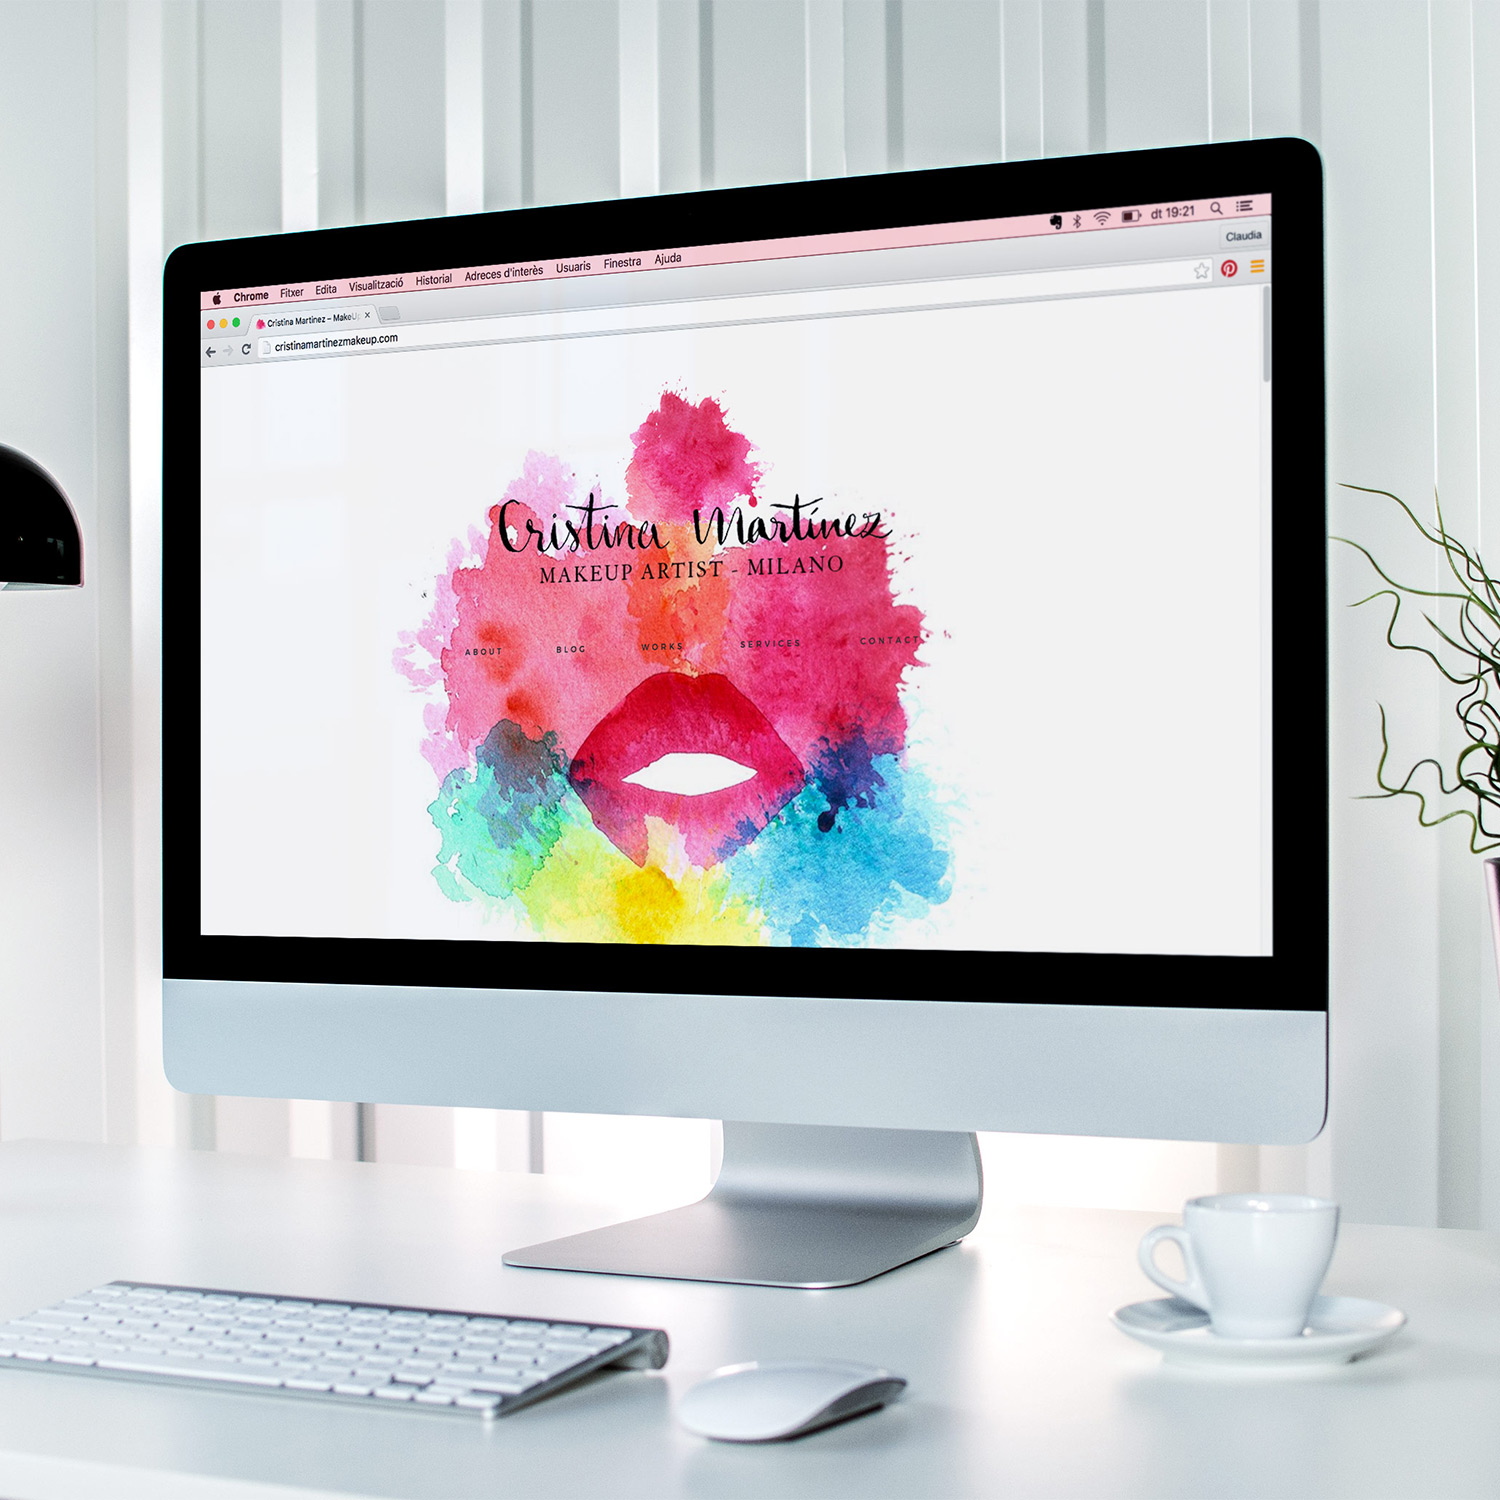 Makeup Artist Website Design for Cristina Martinez by Heartmade.es